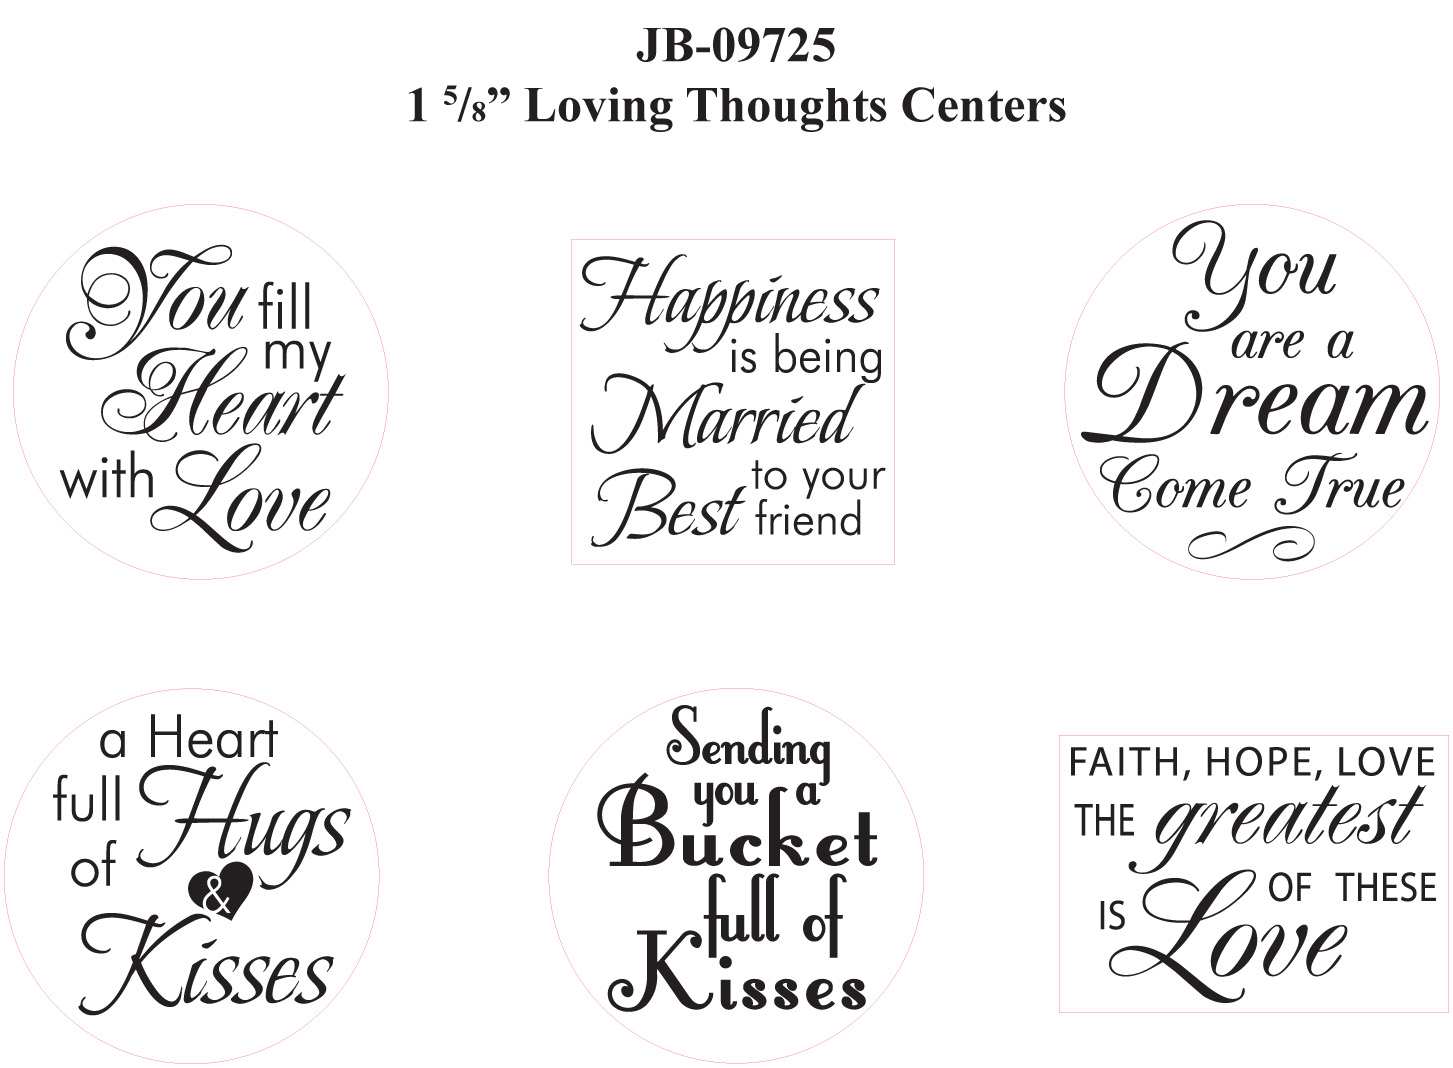 JR 09725 Loving Thoughts Centers